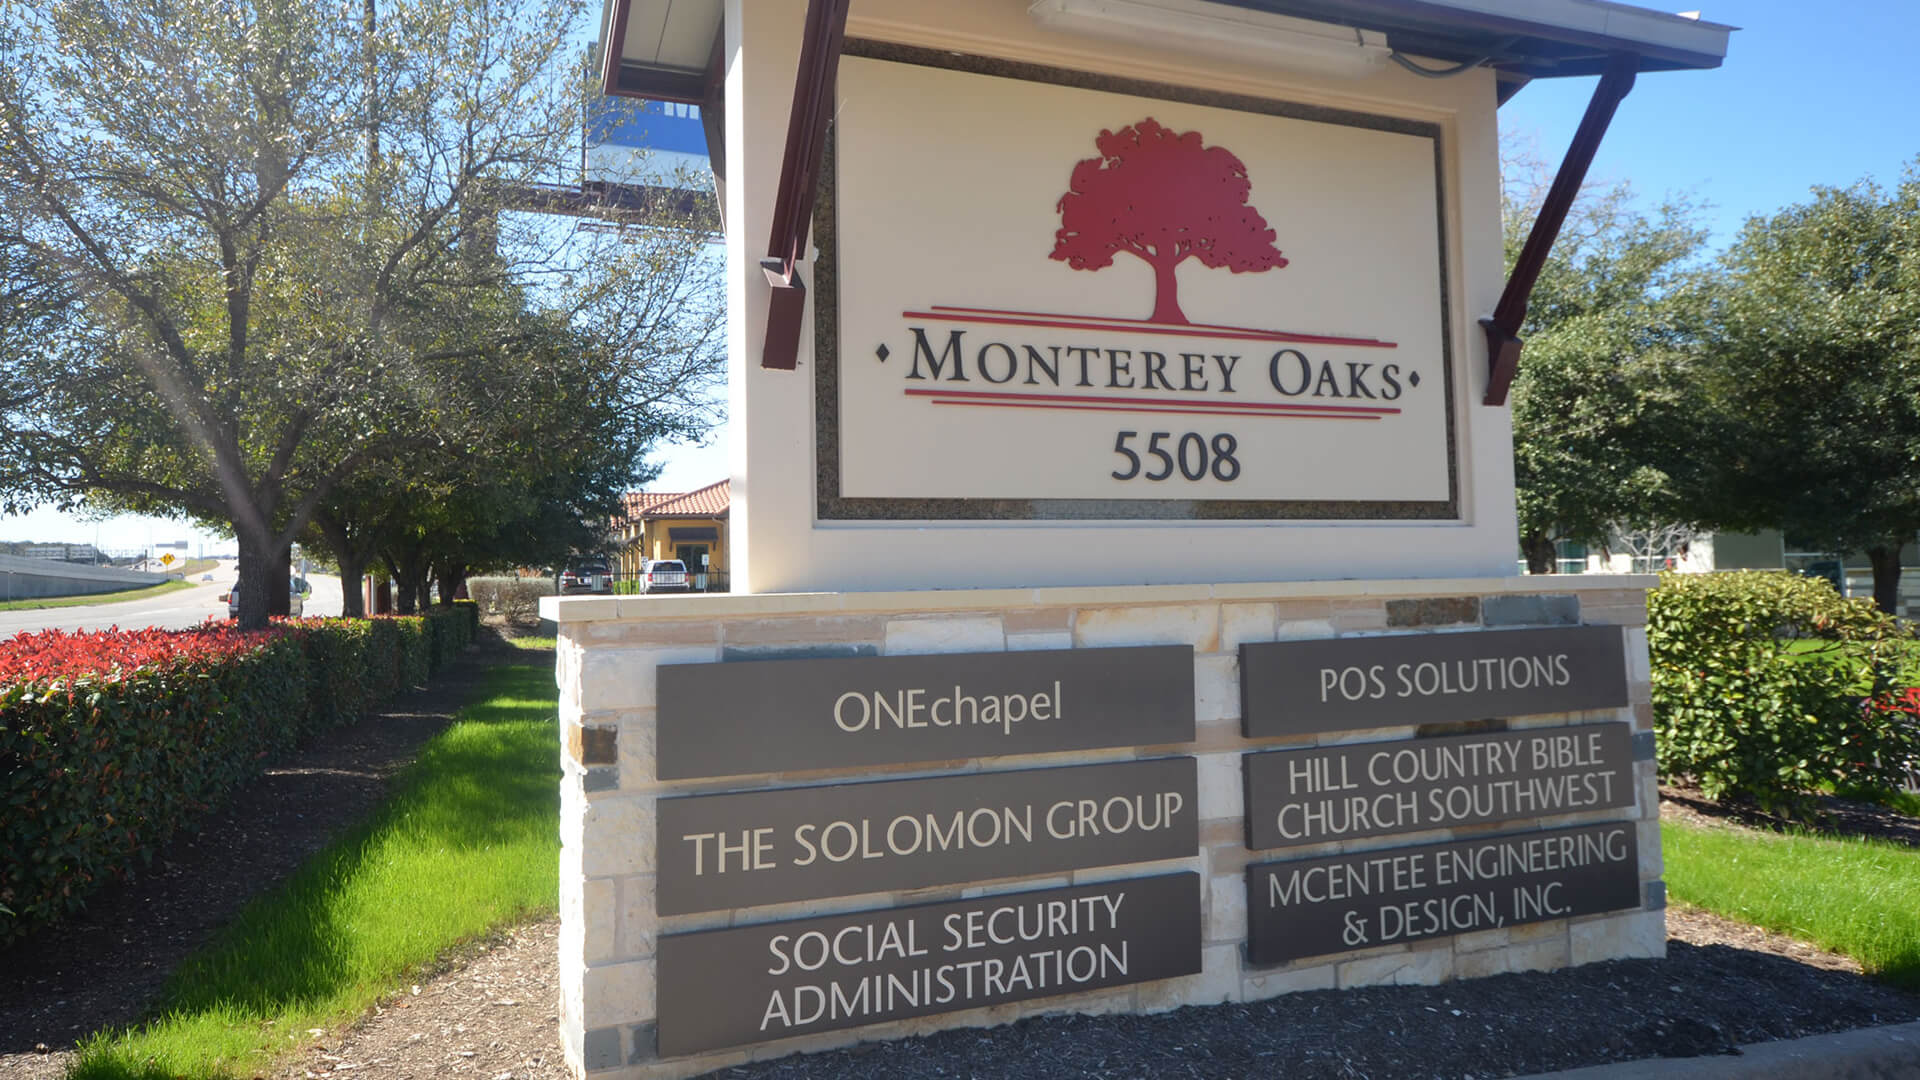 5508 W Hwy 290 Monterey Oaks Office Sign